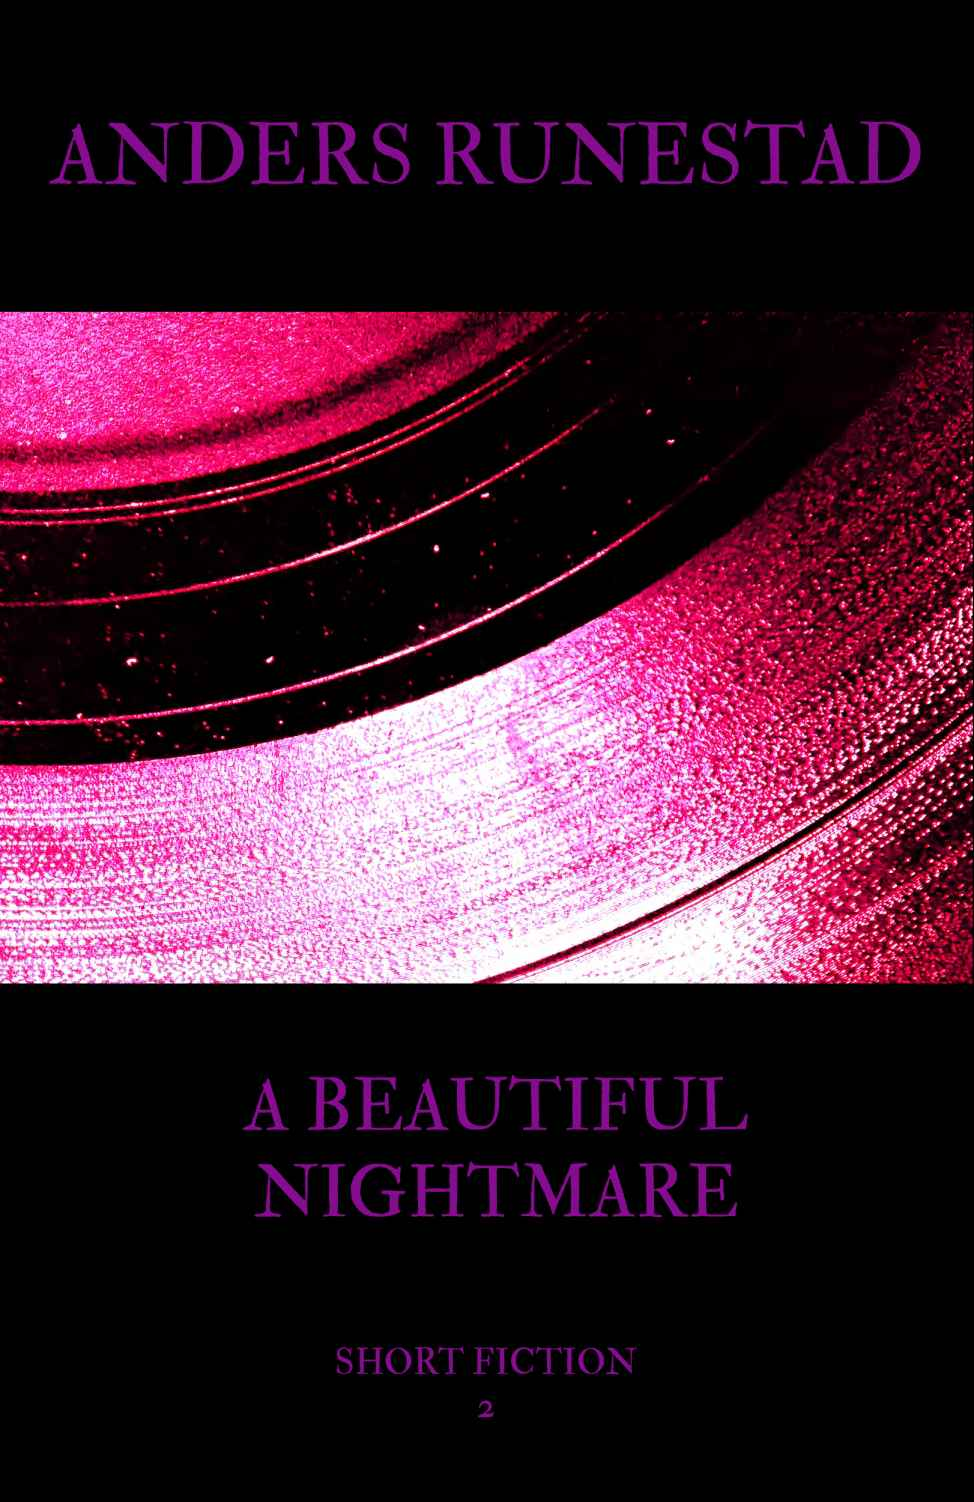 (5) A Beautiful Nightmare